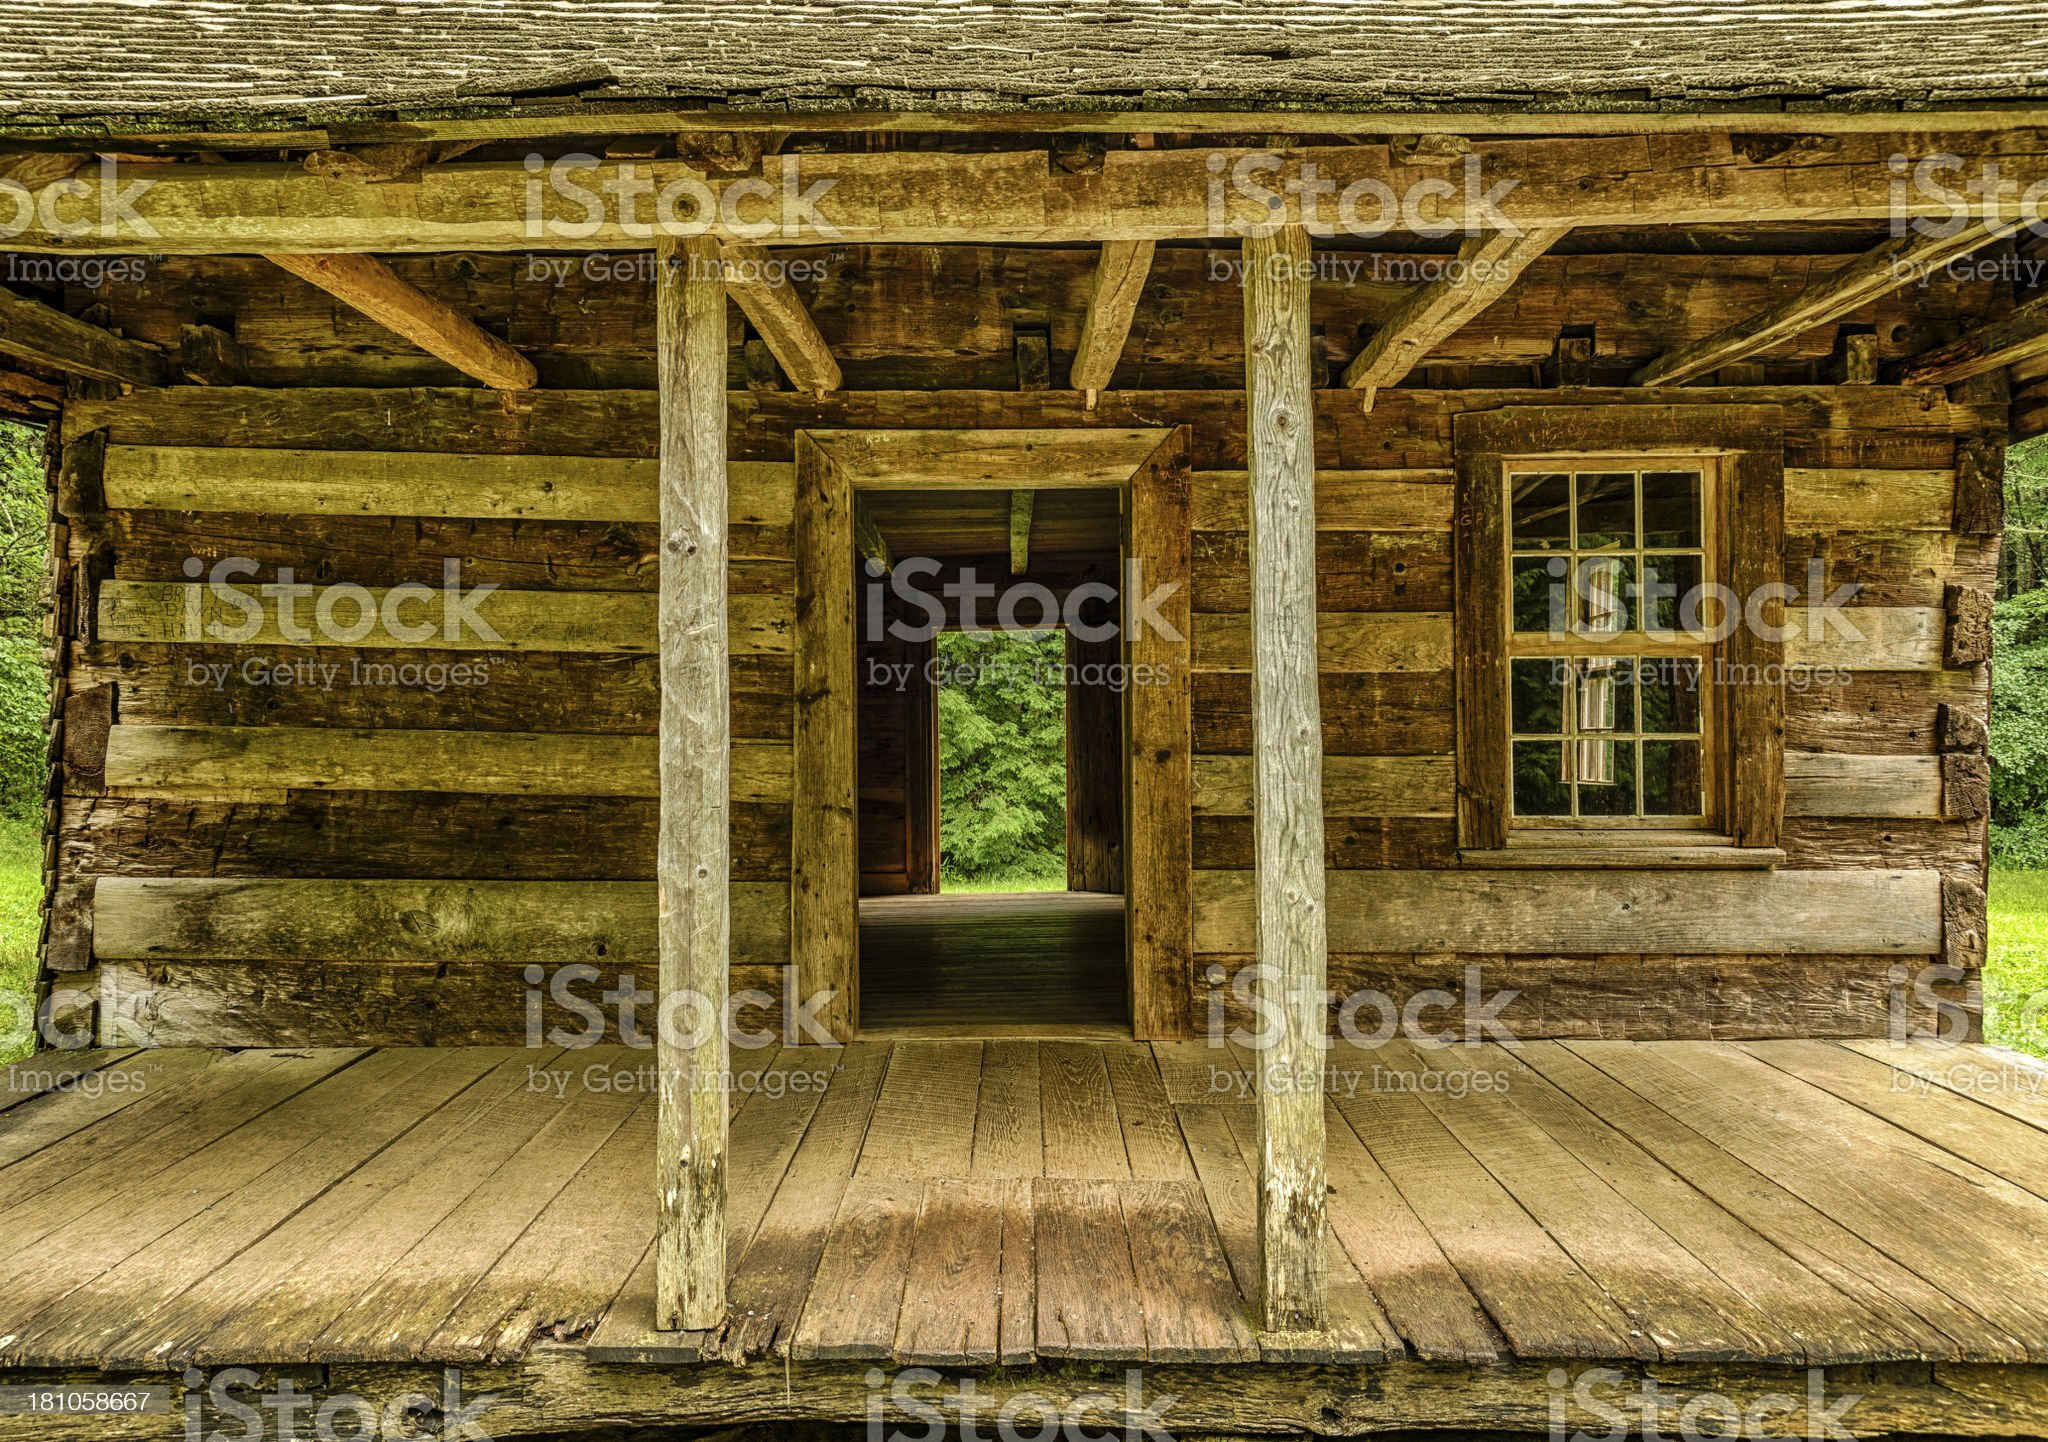 Pioneer Cabin Architecture royalty-free stock photo